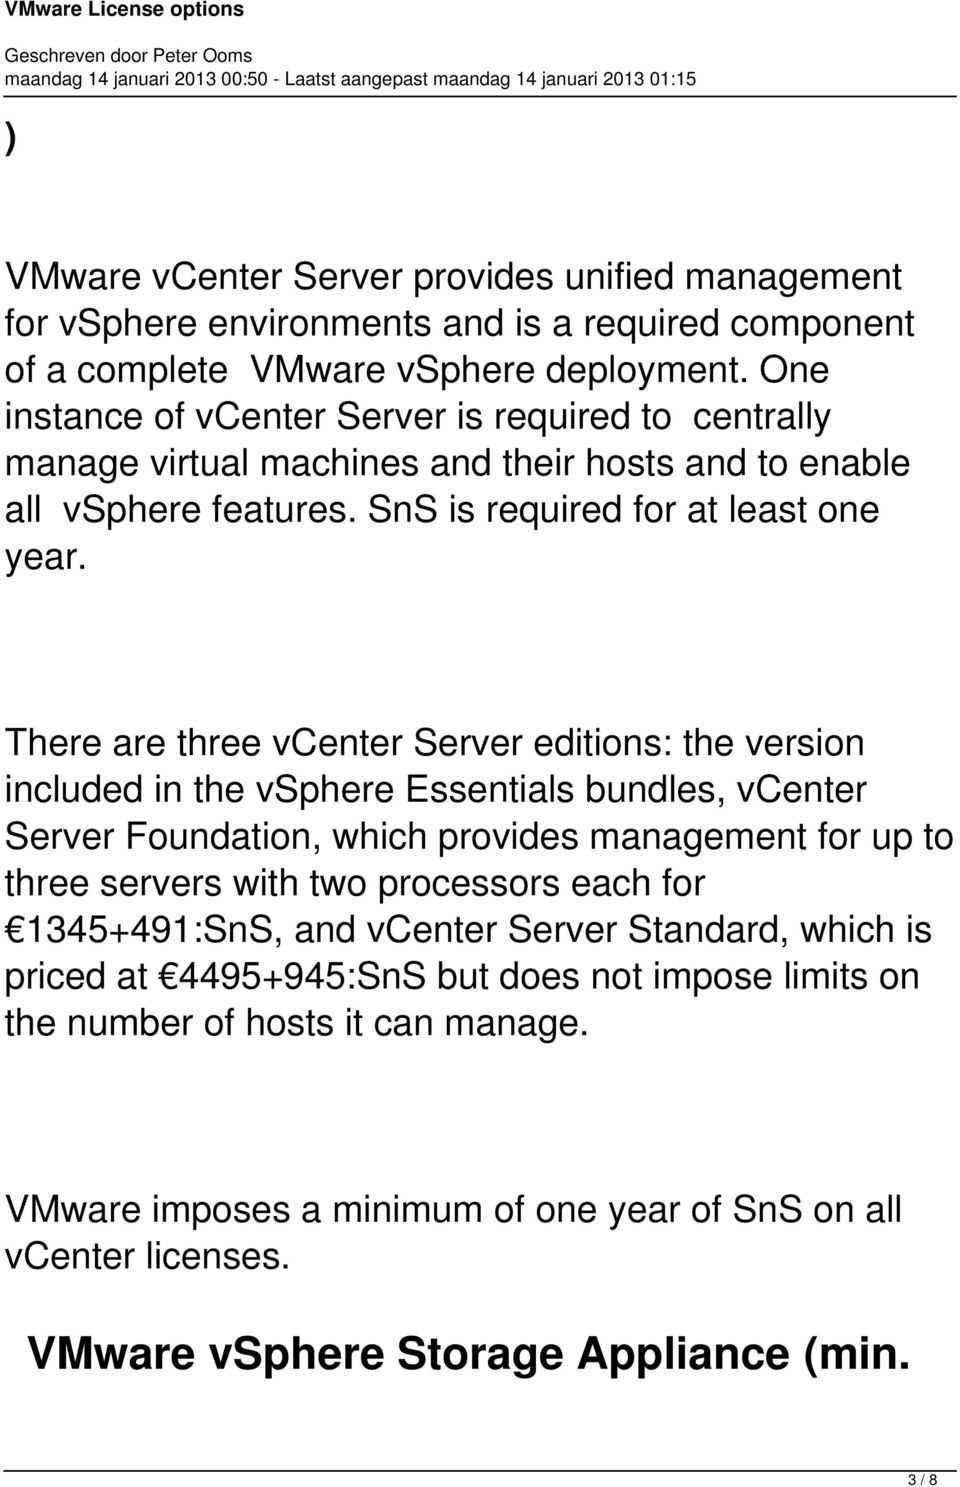 There are three vcenter Server editions: the version included in the vsphere Essentials bundles, vcenter Server Foundation, which provides management for up to three servers with two processors